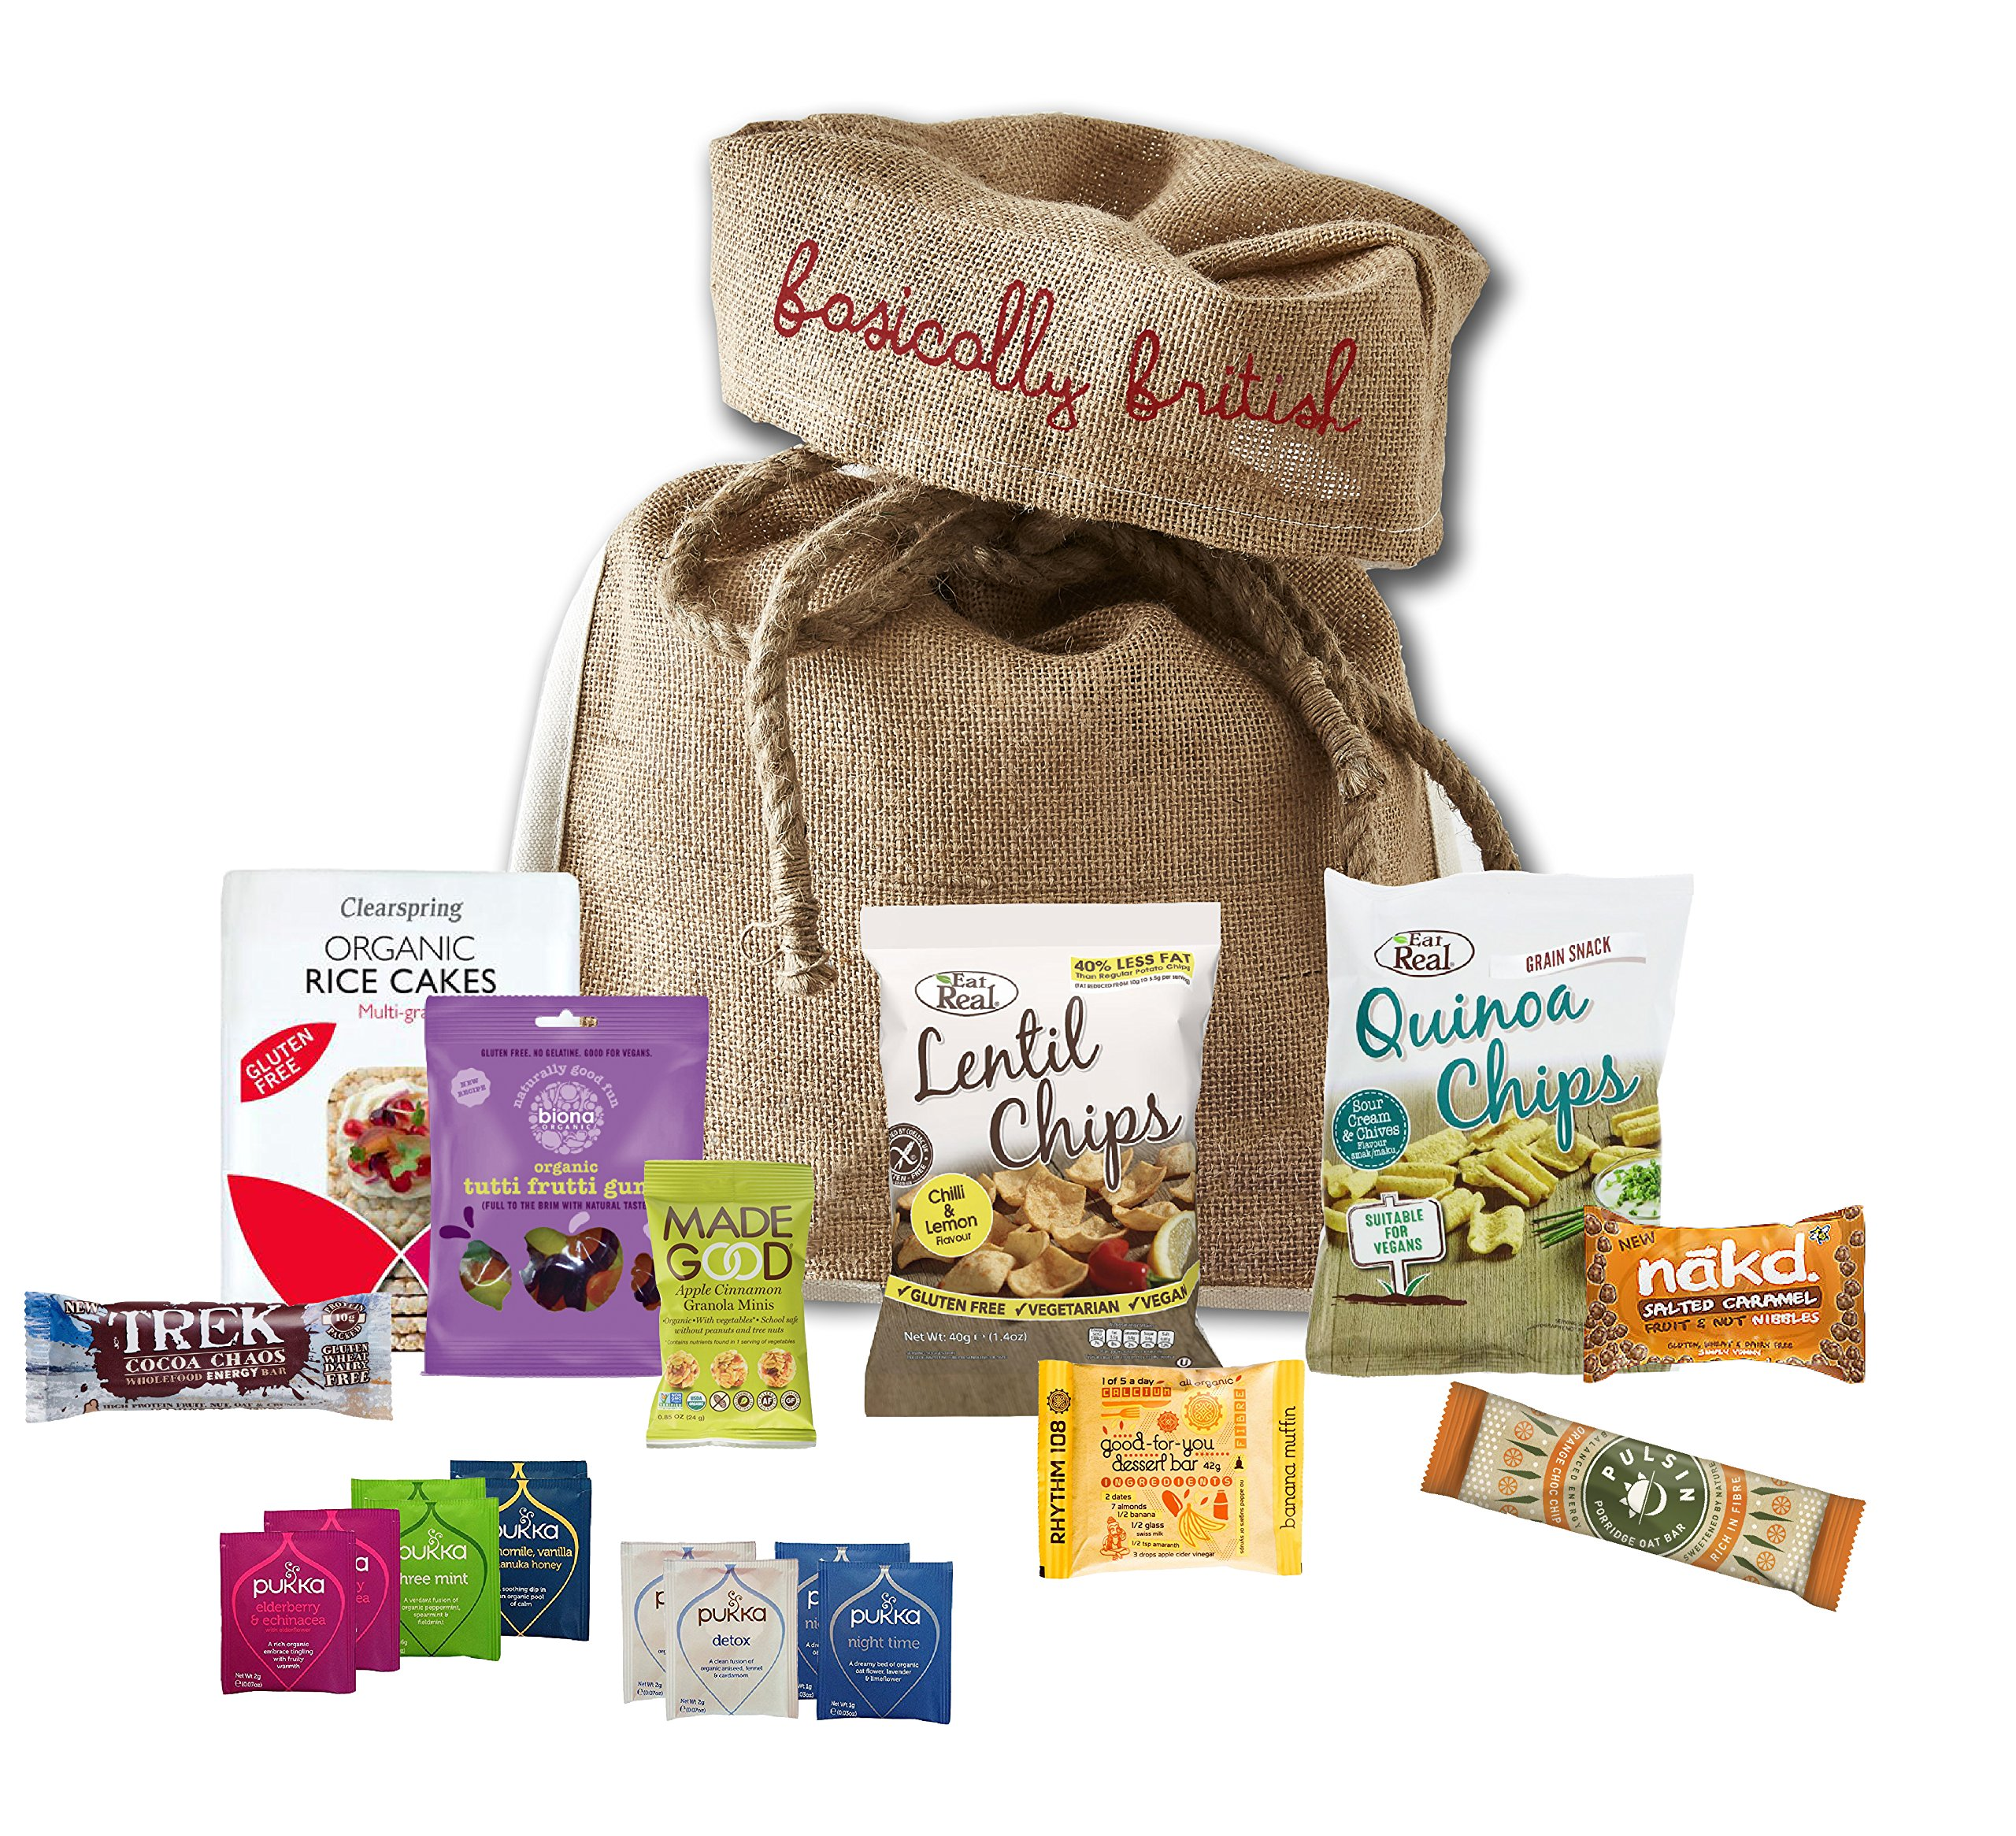 Feel Good Munchies Healthy gift basket by The Yummy Palette | Pukka Tea Bags and healthy snacks | Eat Real Chips Rice Cakes Nuts Rhythm 108 cakes in Basically British Rustic Gift Bag by The Yummy Palette